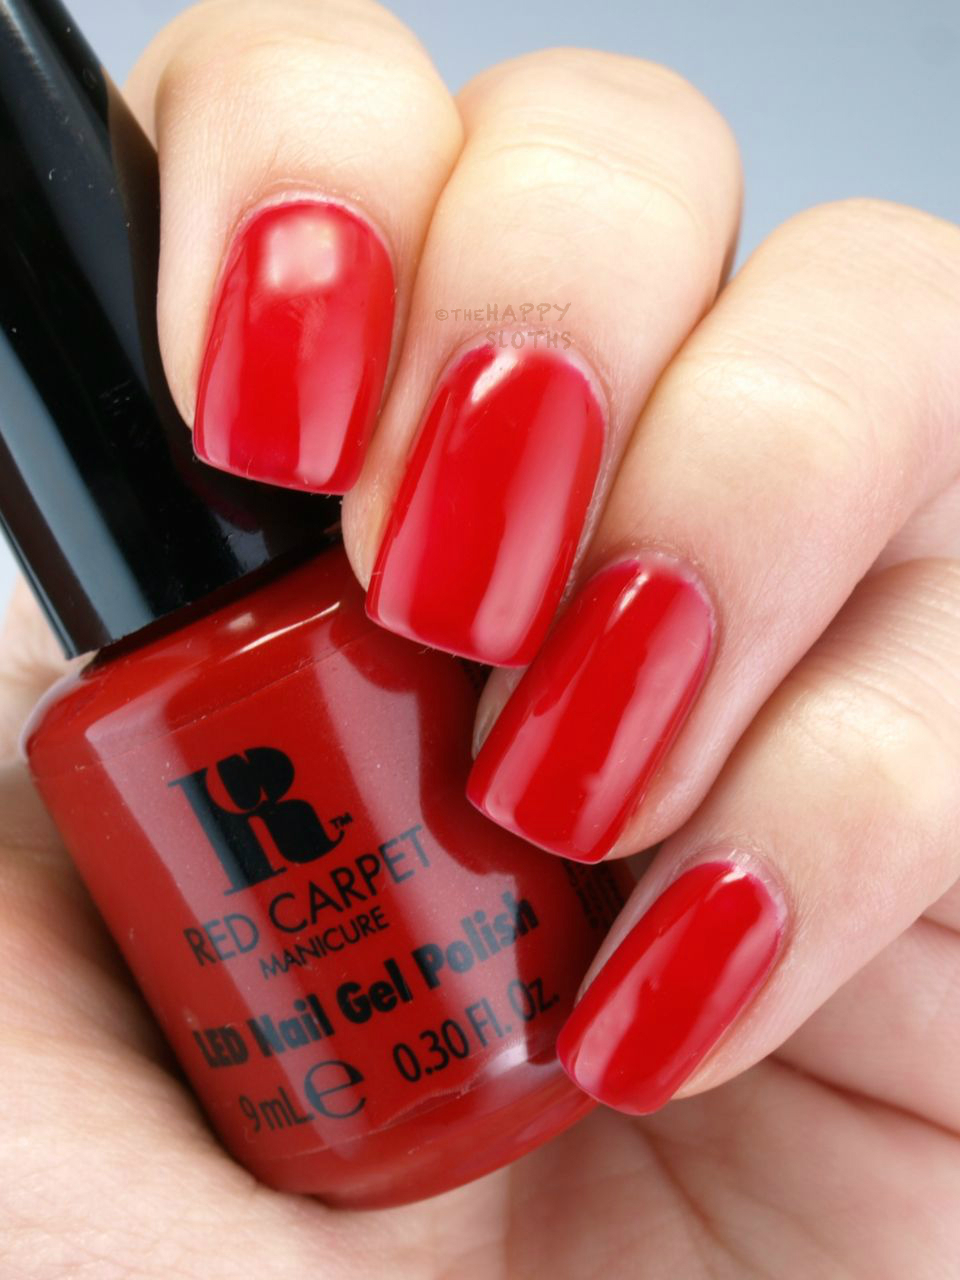 Review And Swatches Red Carpet Manicure Led Gel Polish | Rachael ...